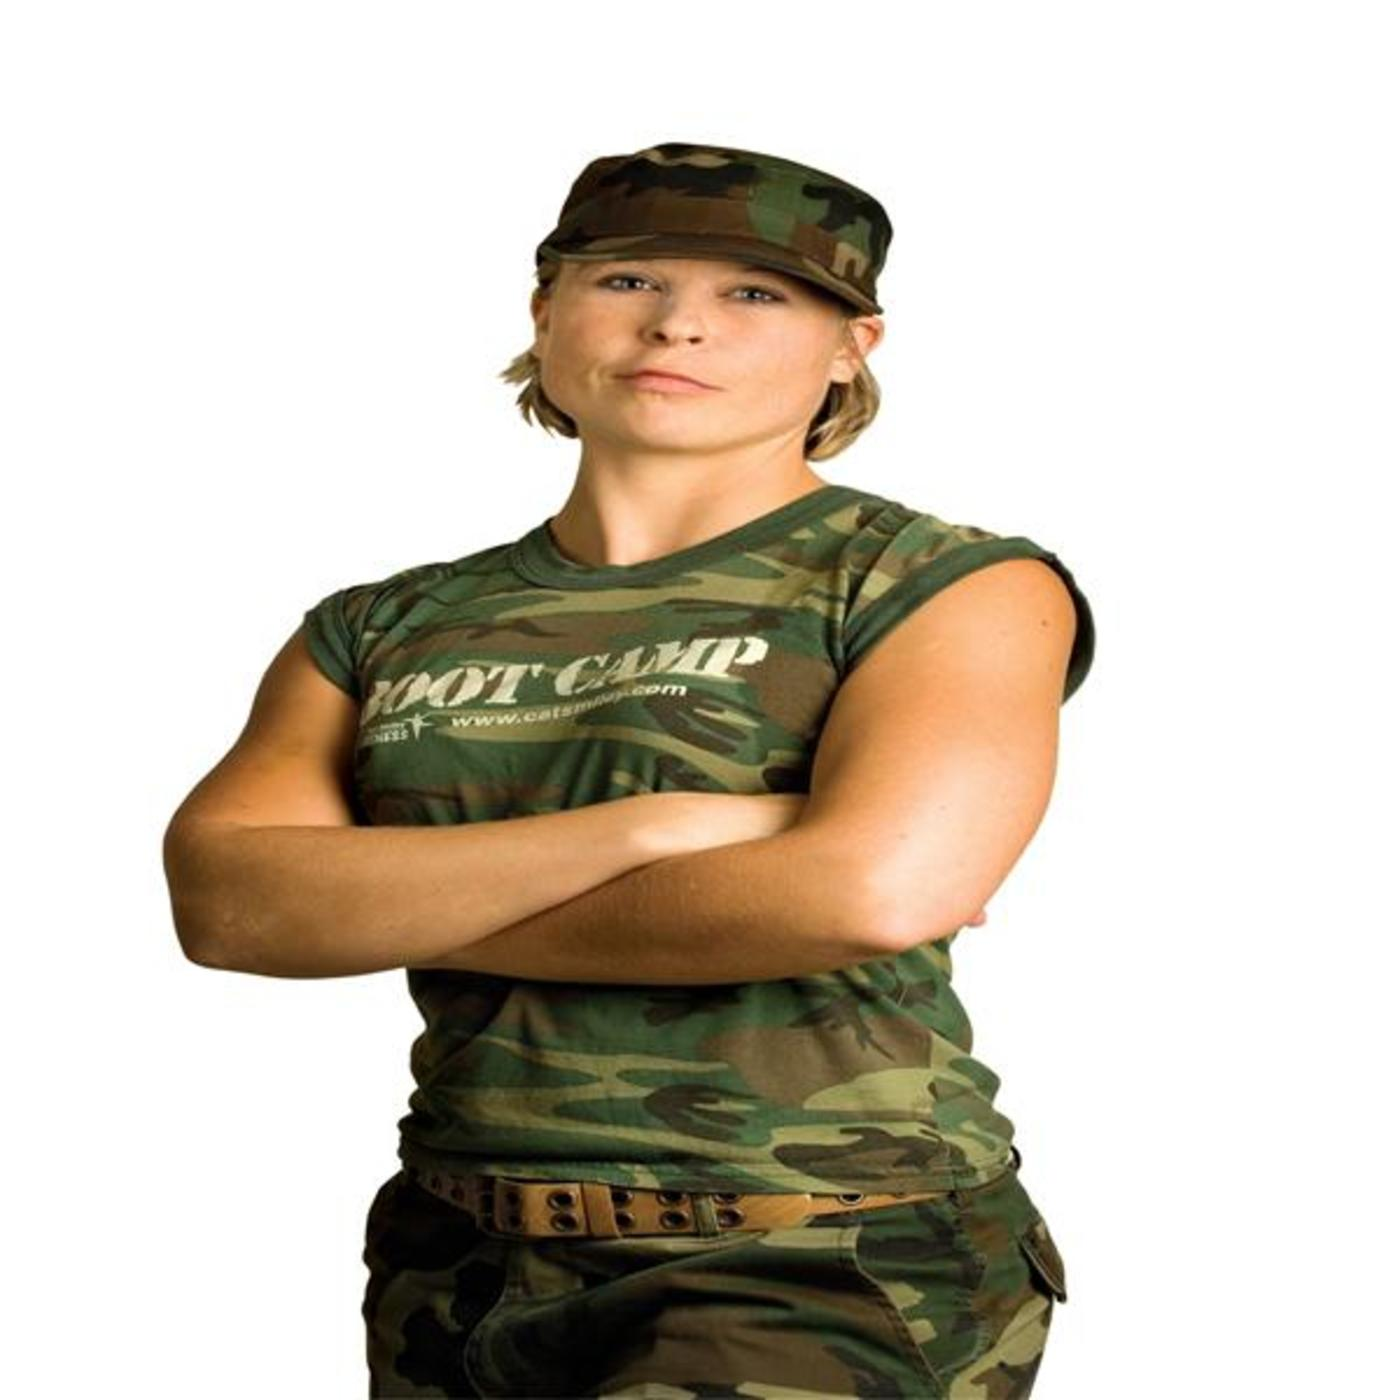 BOOT CAMP RADIO:BOOT CAMP RADIO